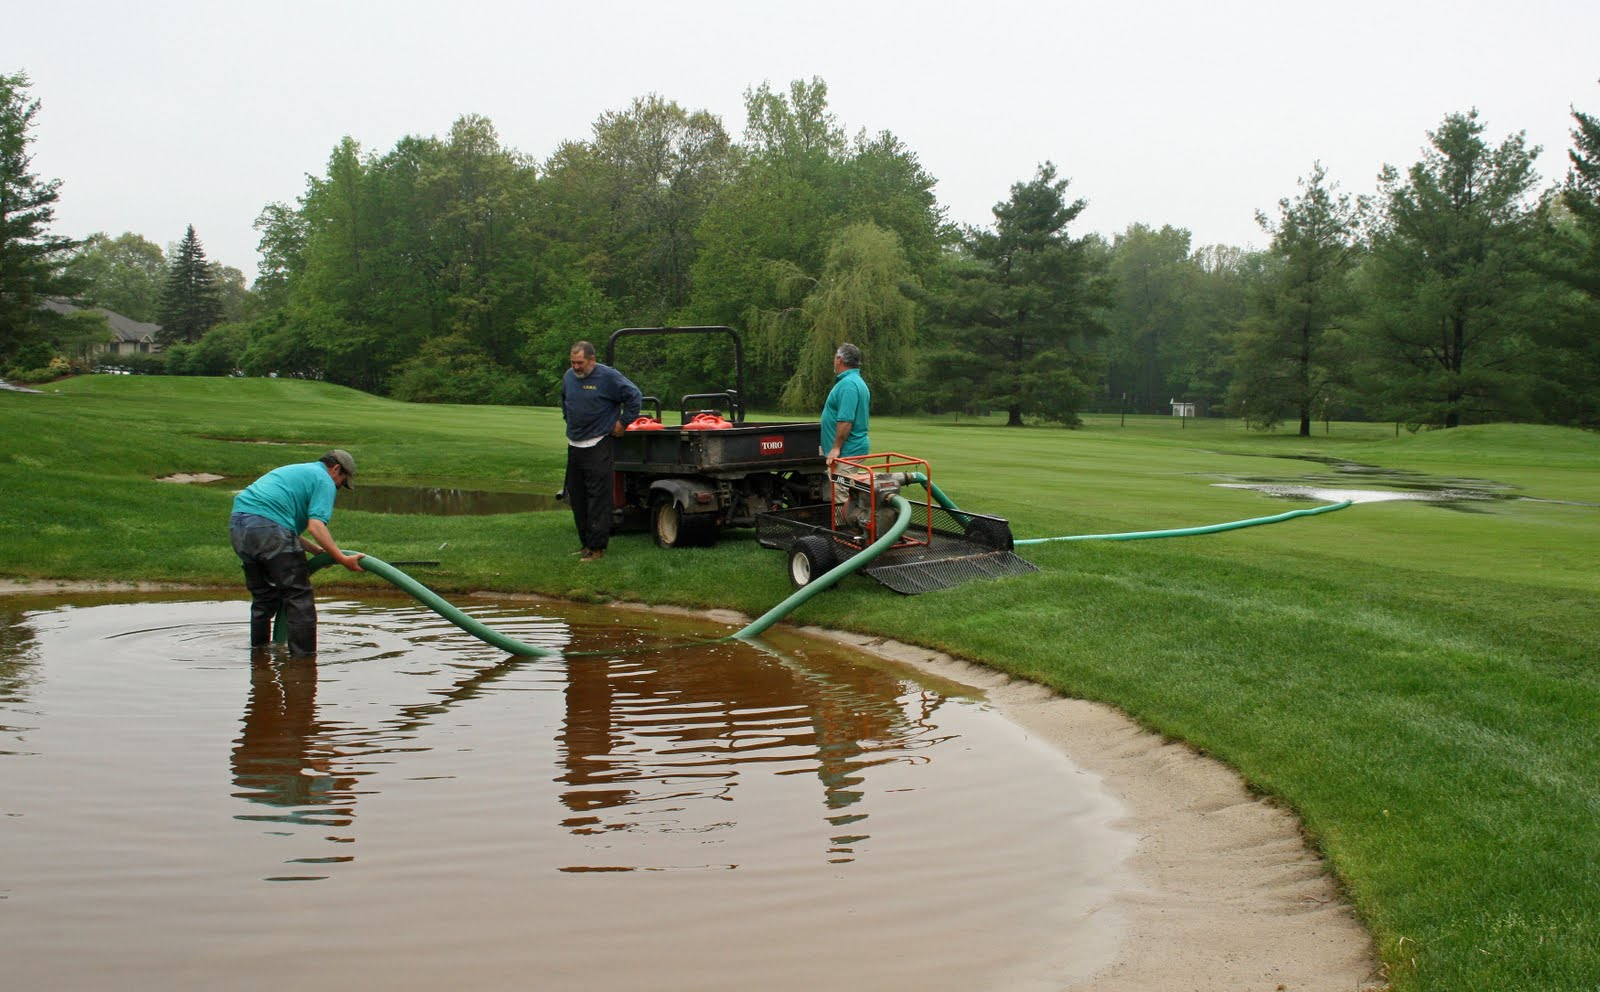 The farms country club s golf course superintendent paul